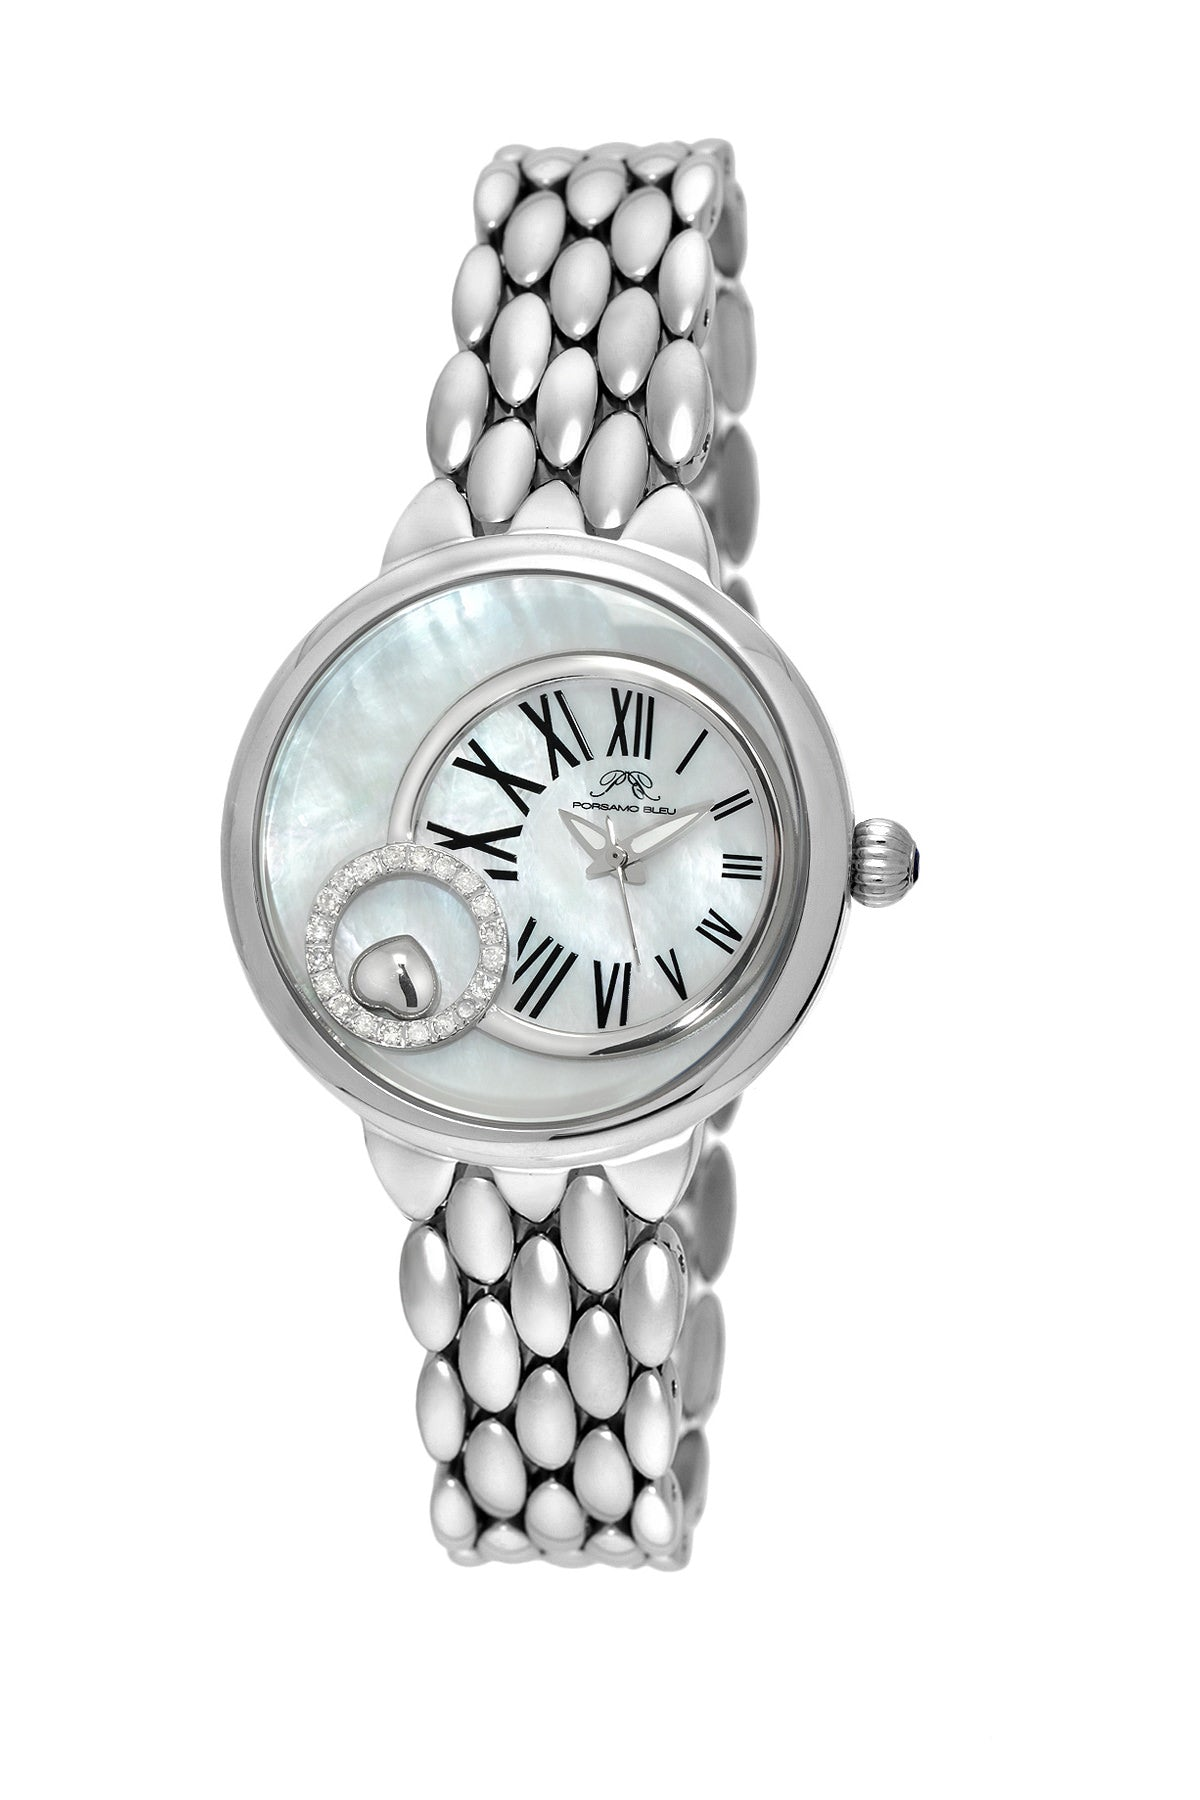 Porsamo Bleu Claire luxury diamond women's stainless steel watch, silver, white 721ACLS